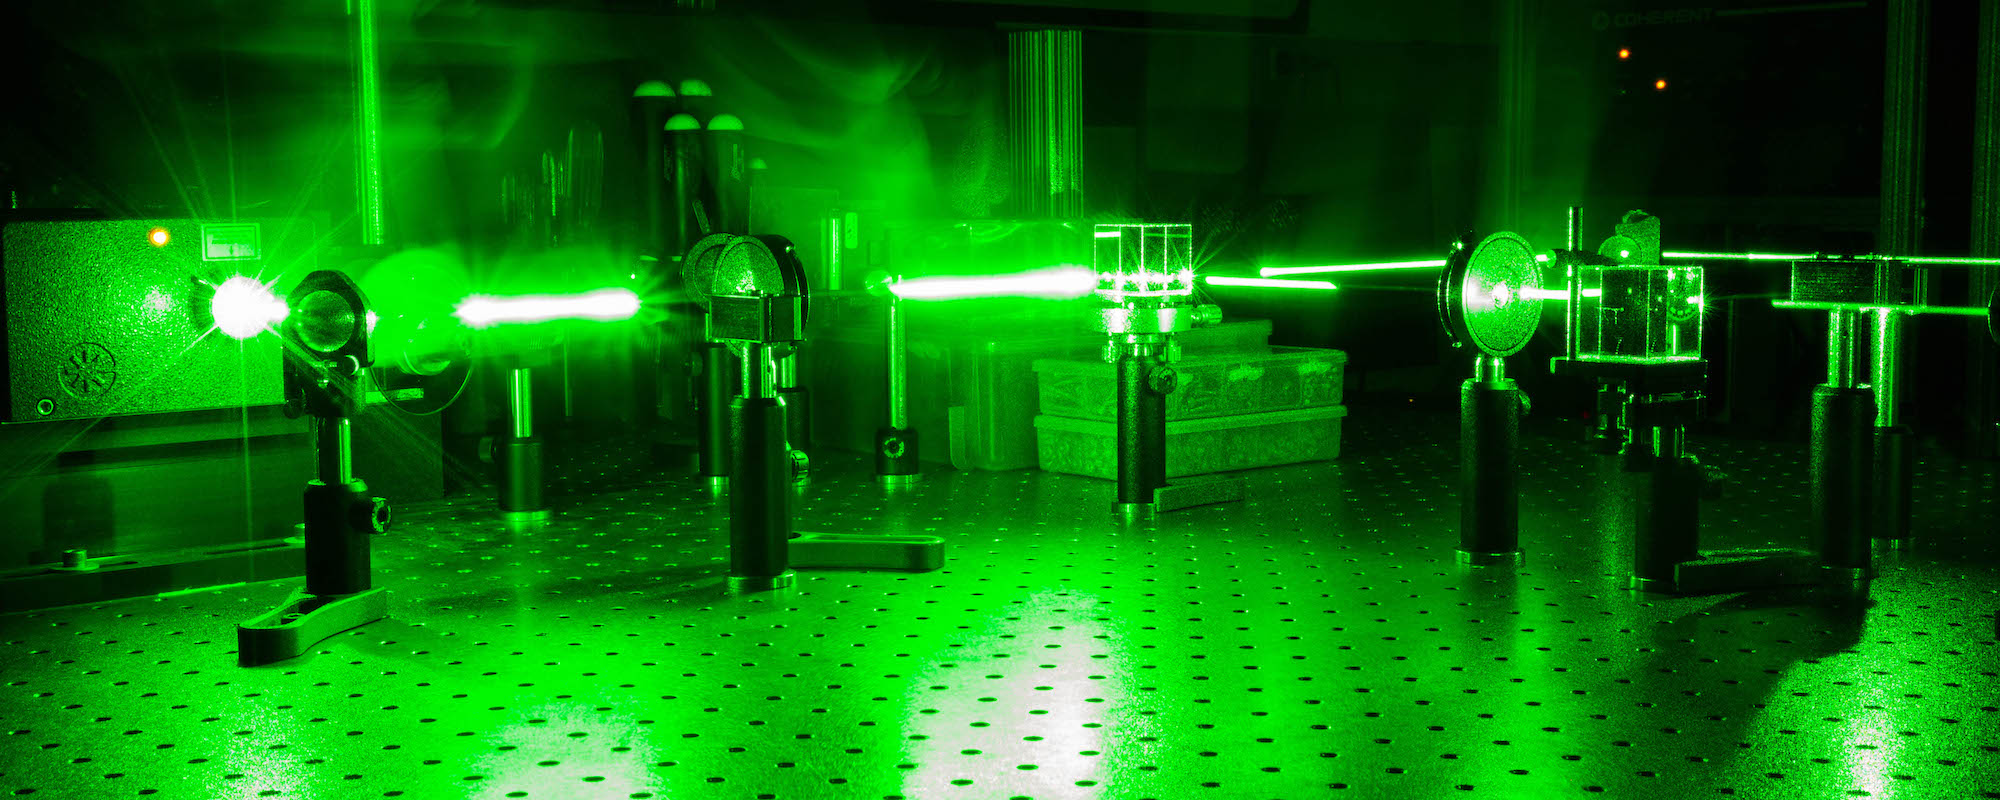 Optics laser lab